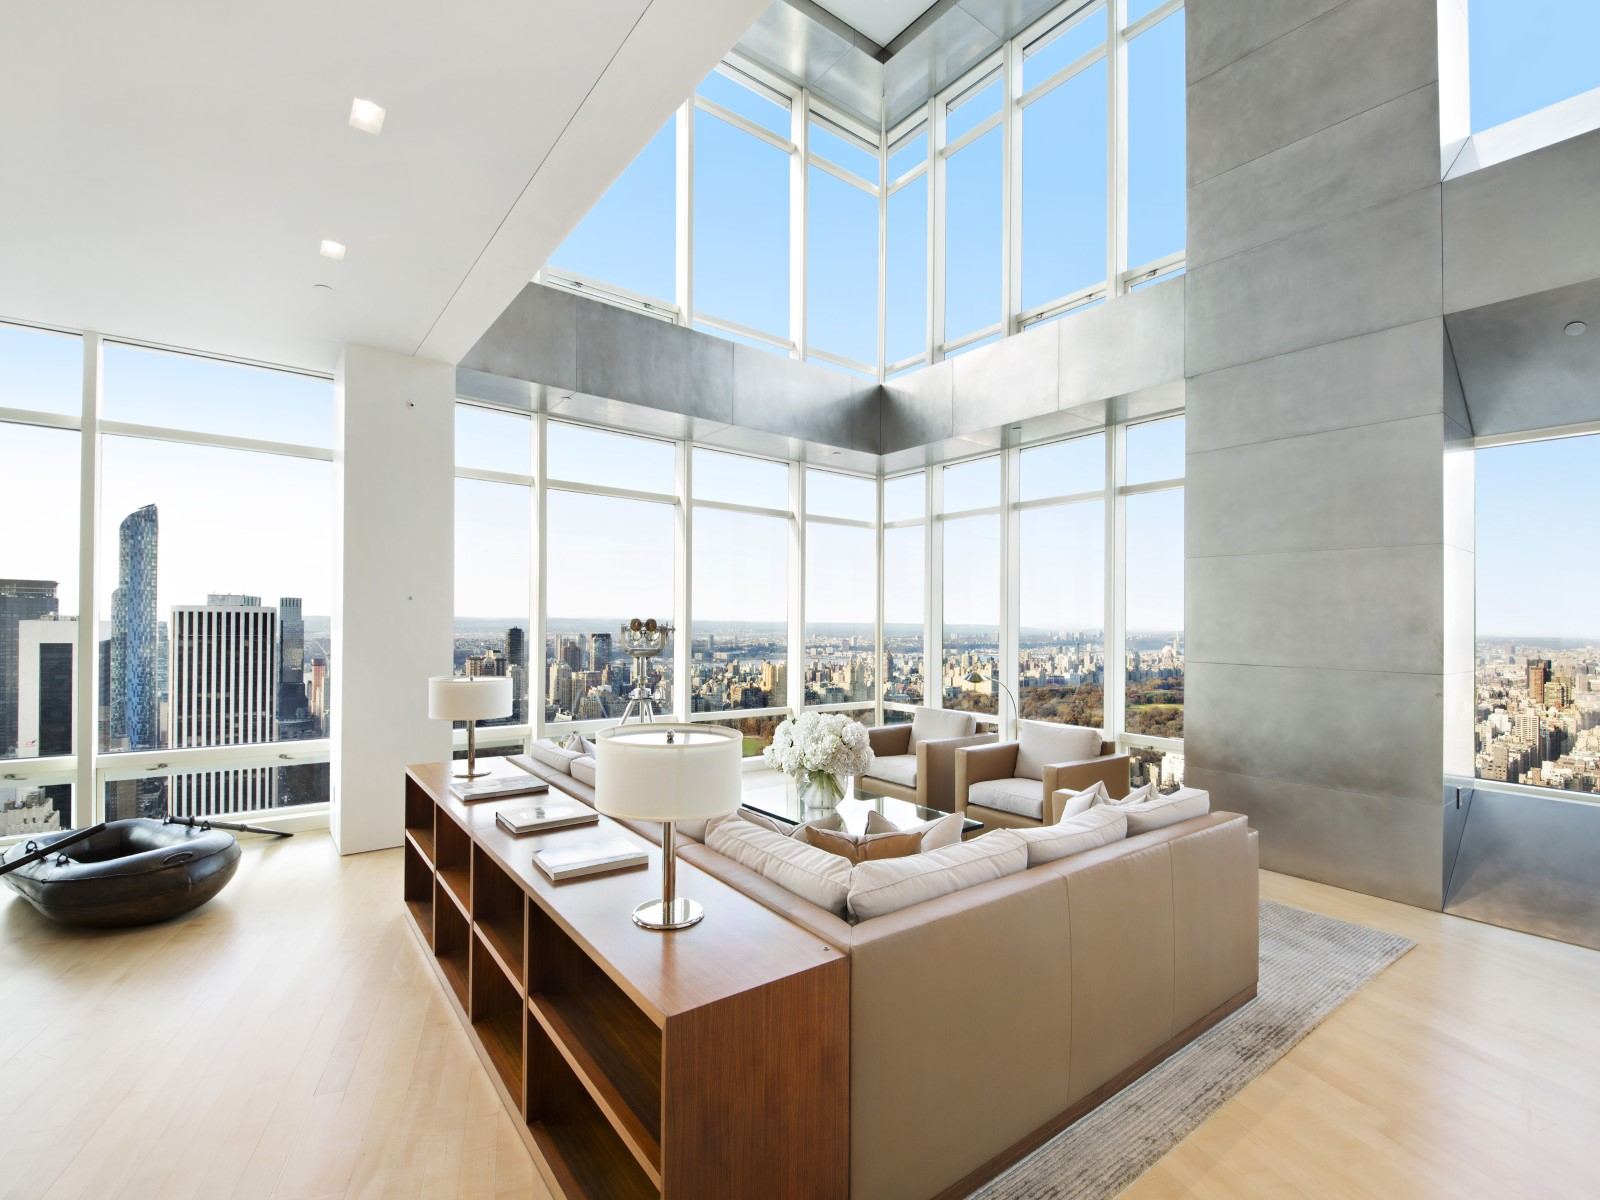 Cococozy 82 million dollar penthouse bargain for Million dollar apartments nyc